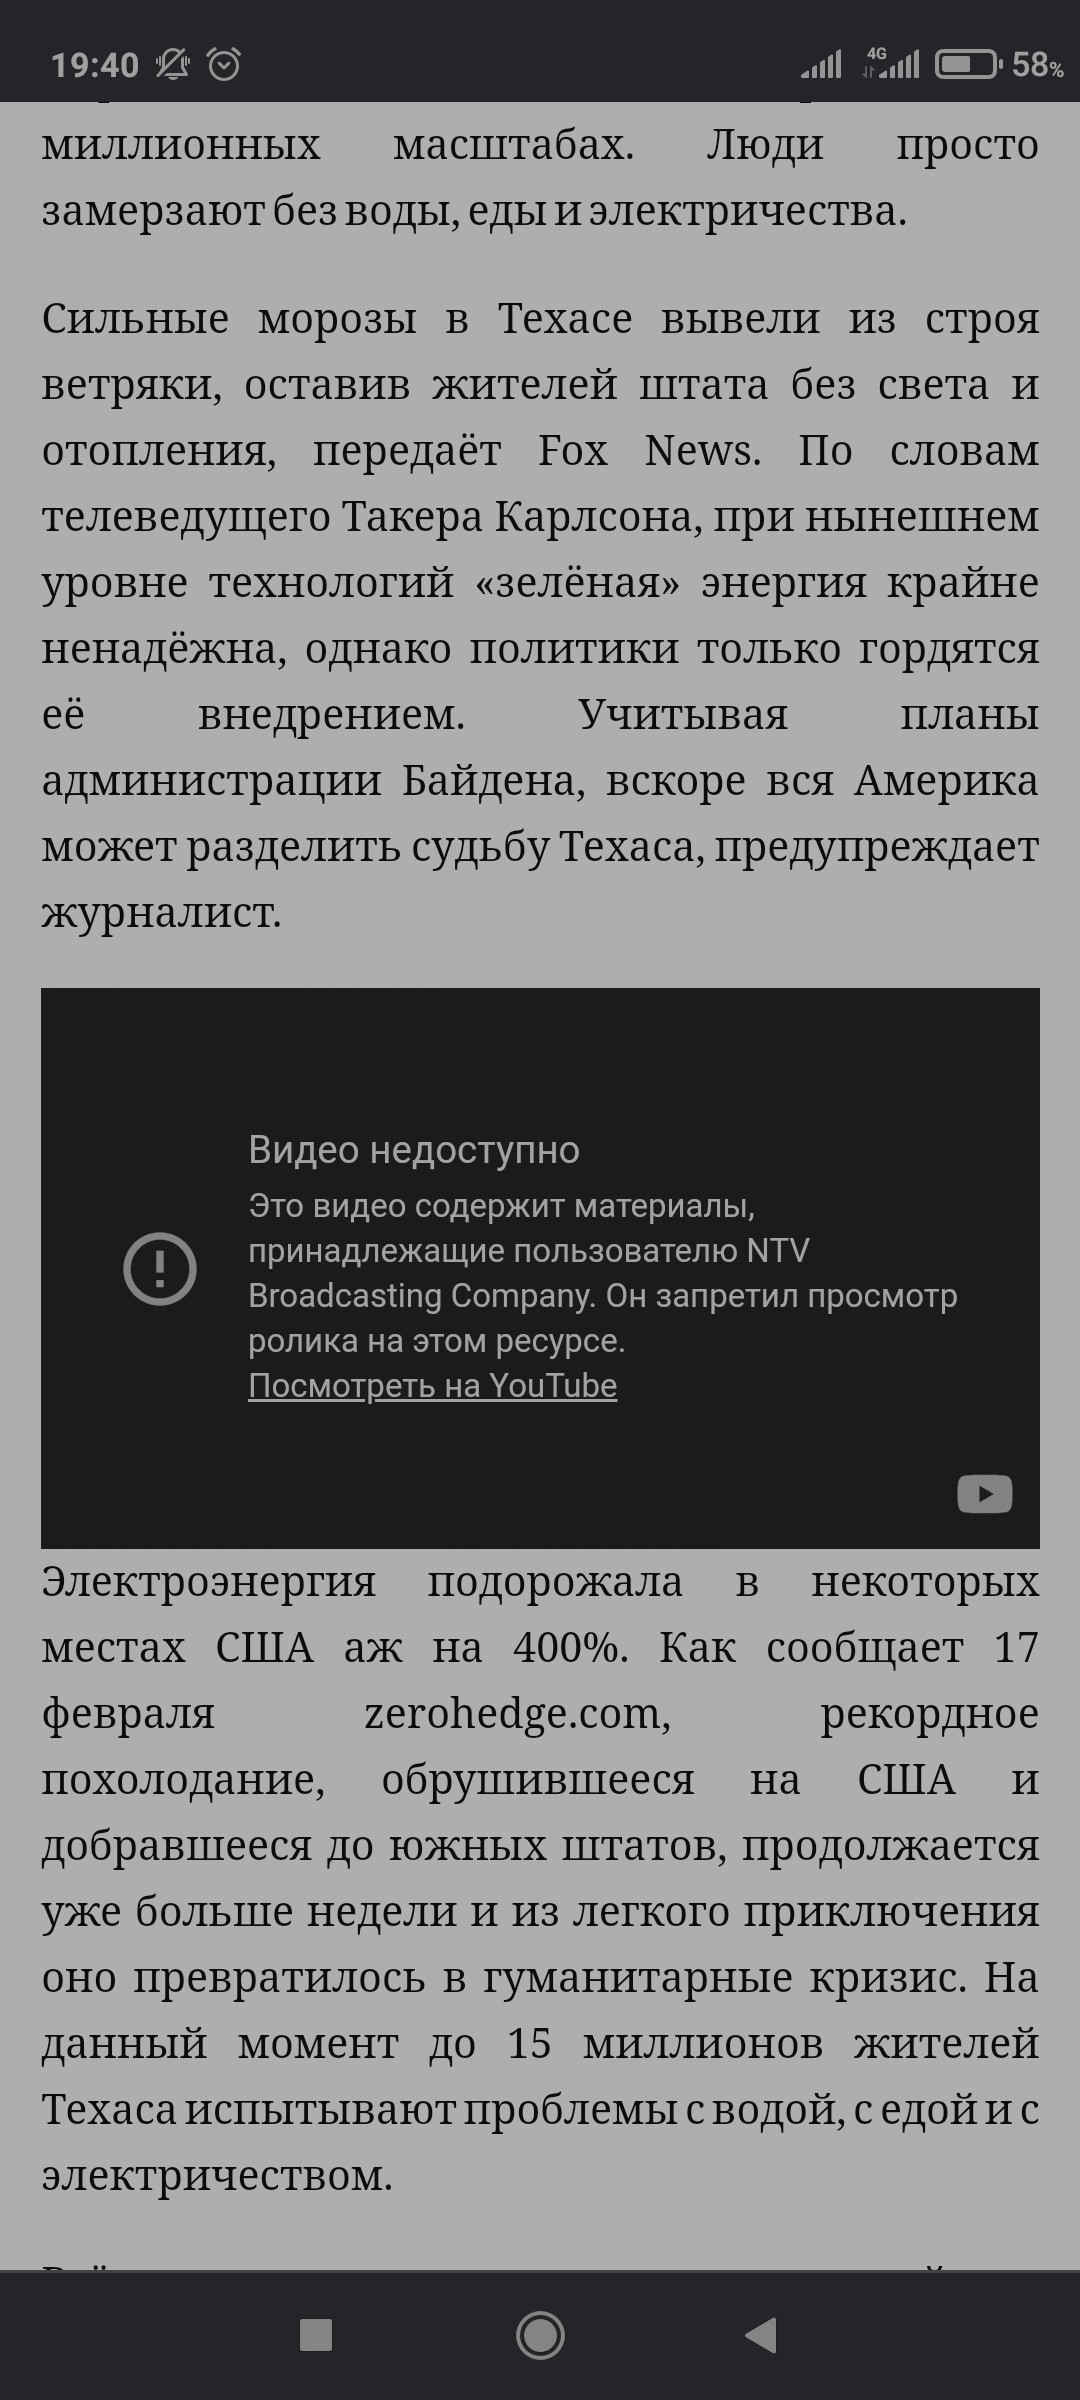 Screenshot_2021-02-19-19-40-02-043_com.android.chrome.jpg